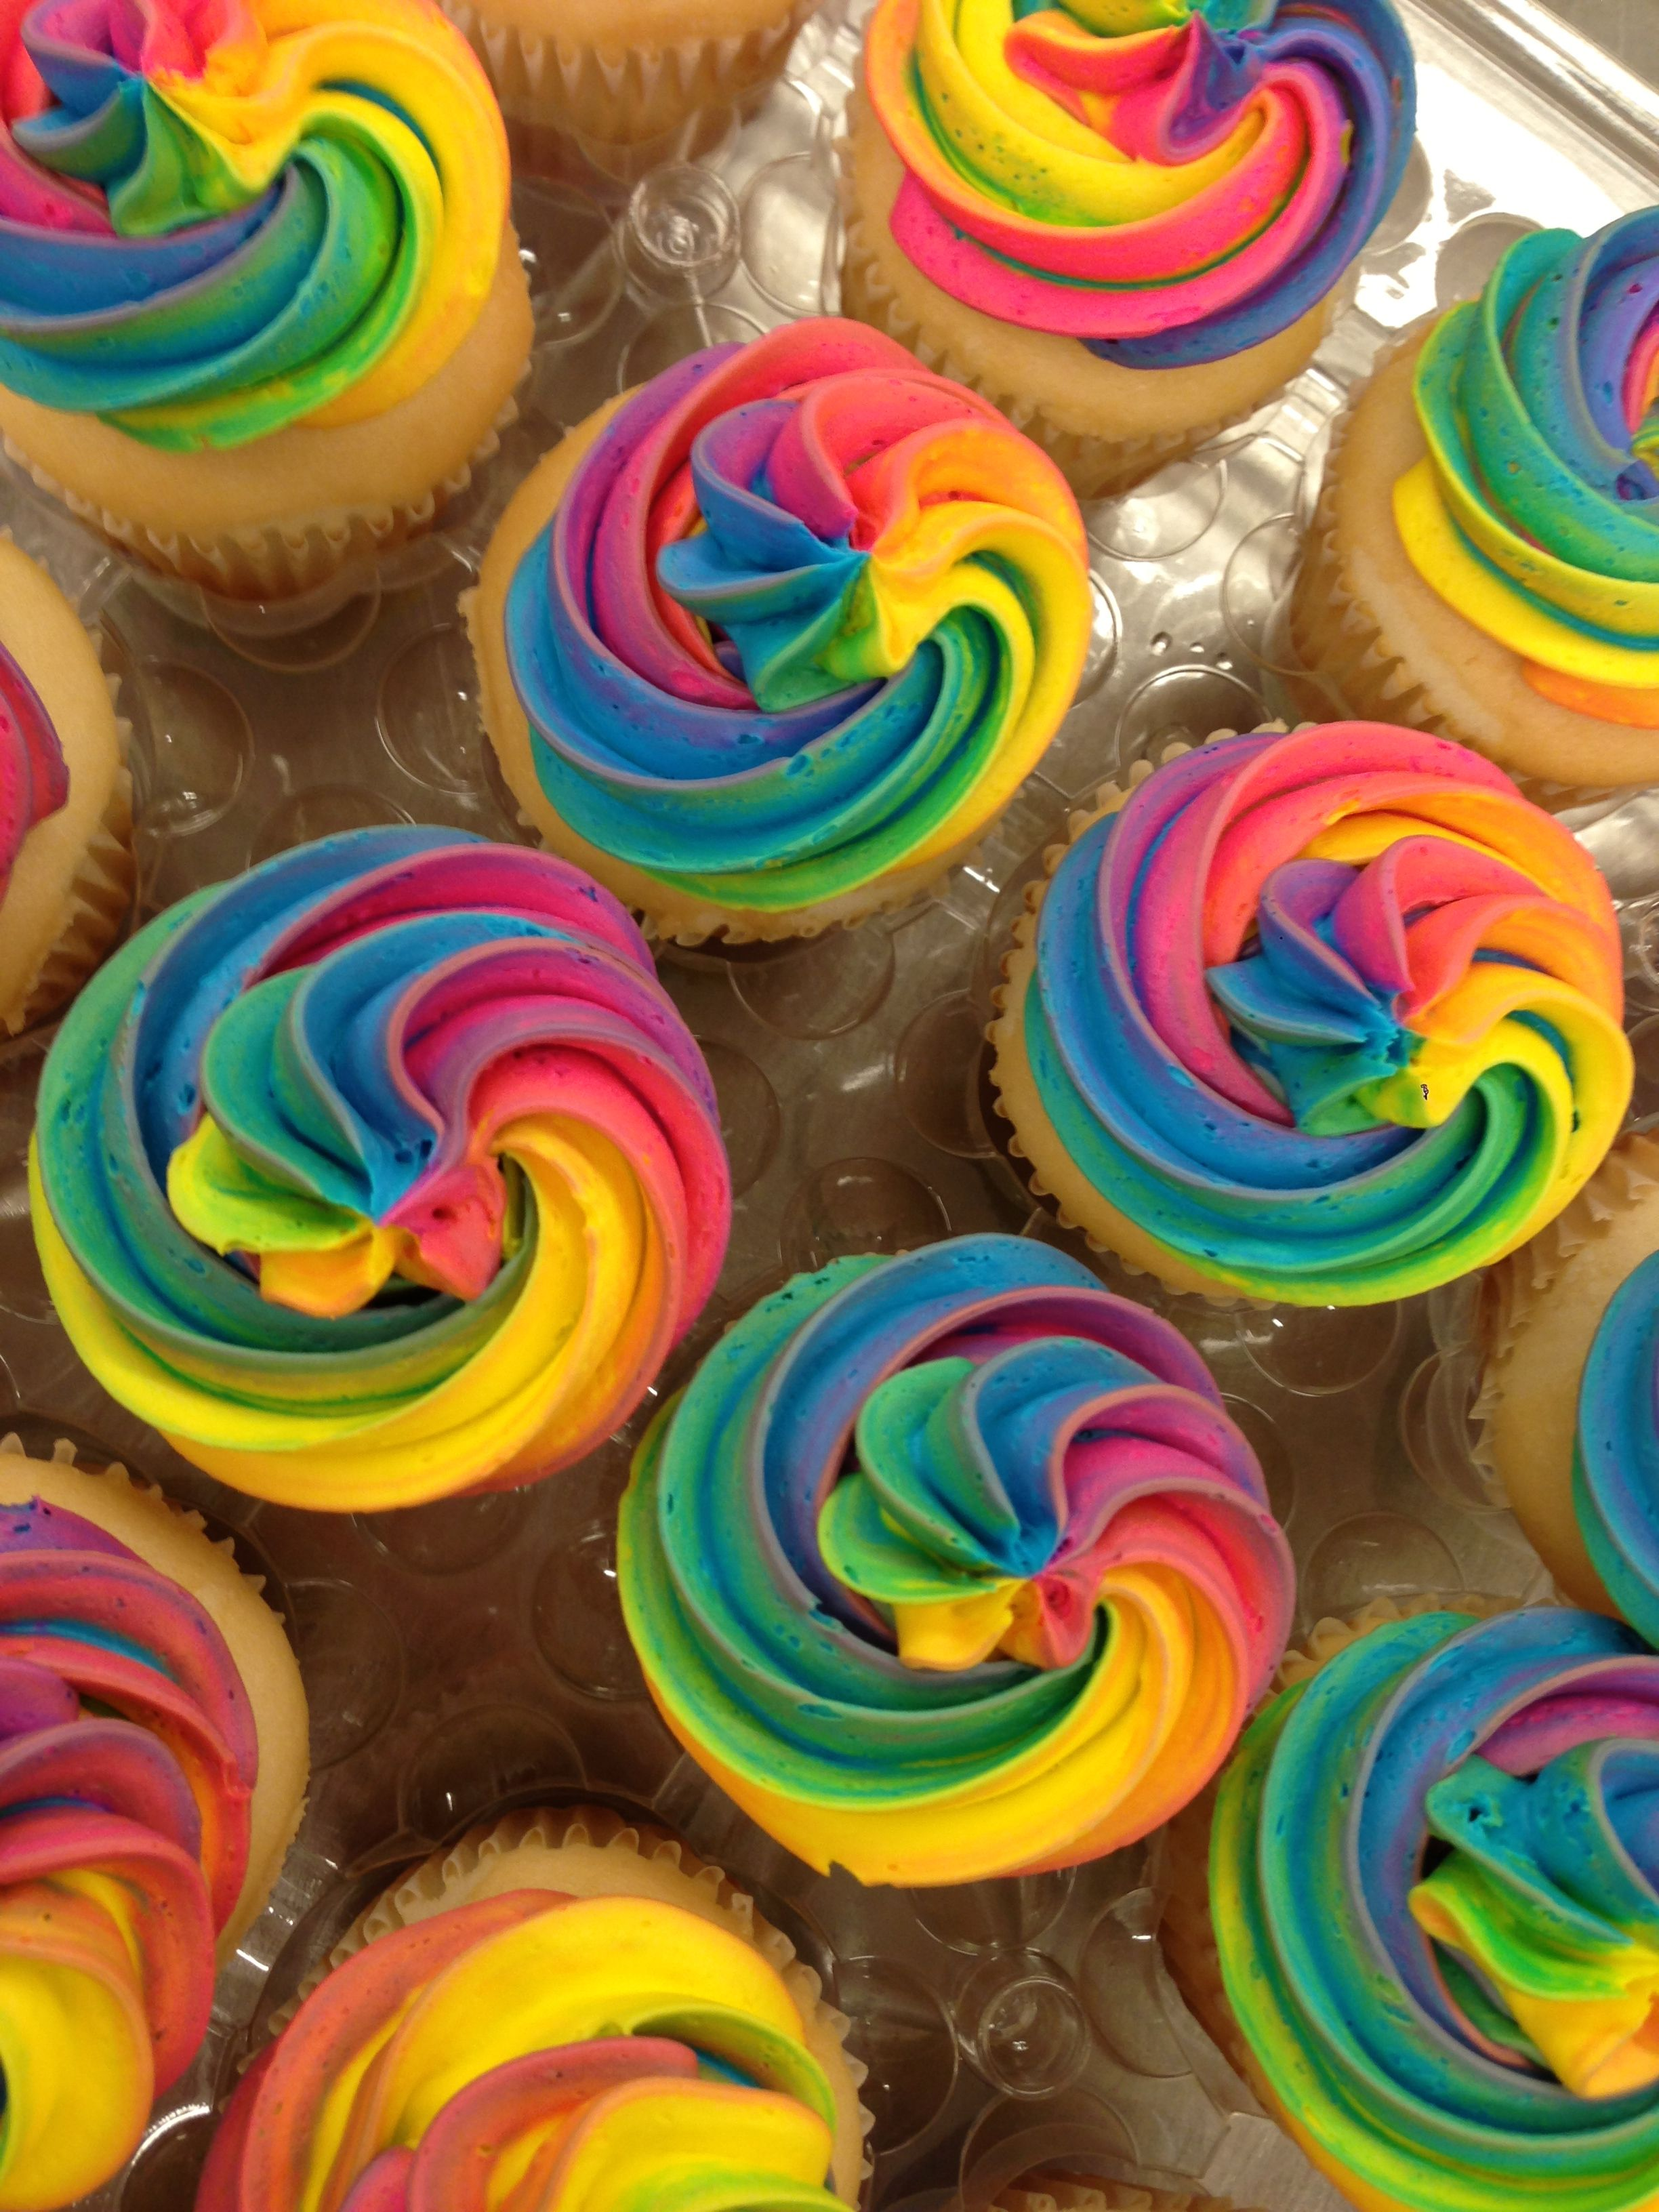 Rainbow swirl frosting on cupcakes | Frosting | Pinterest ...